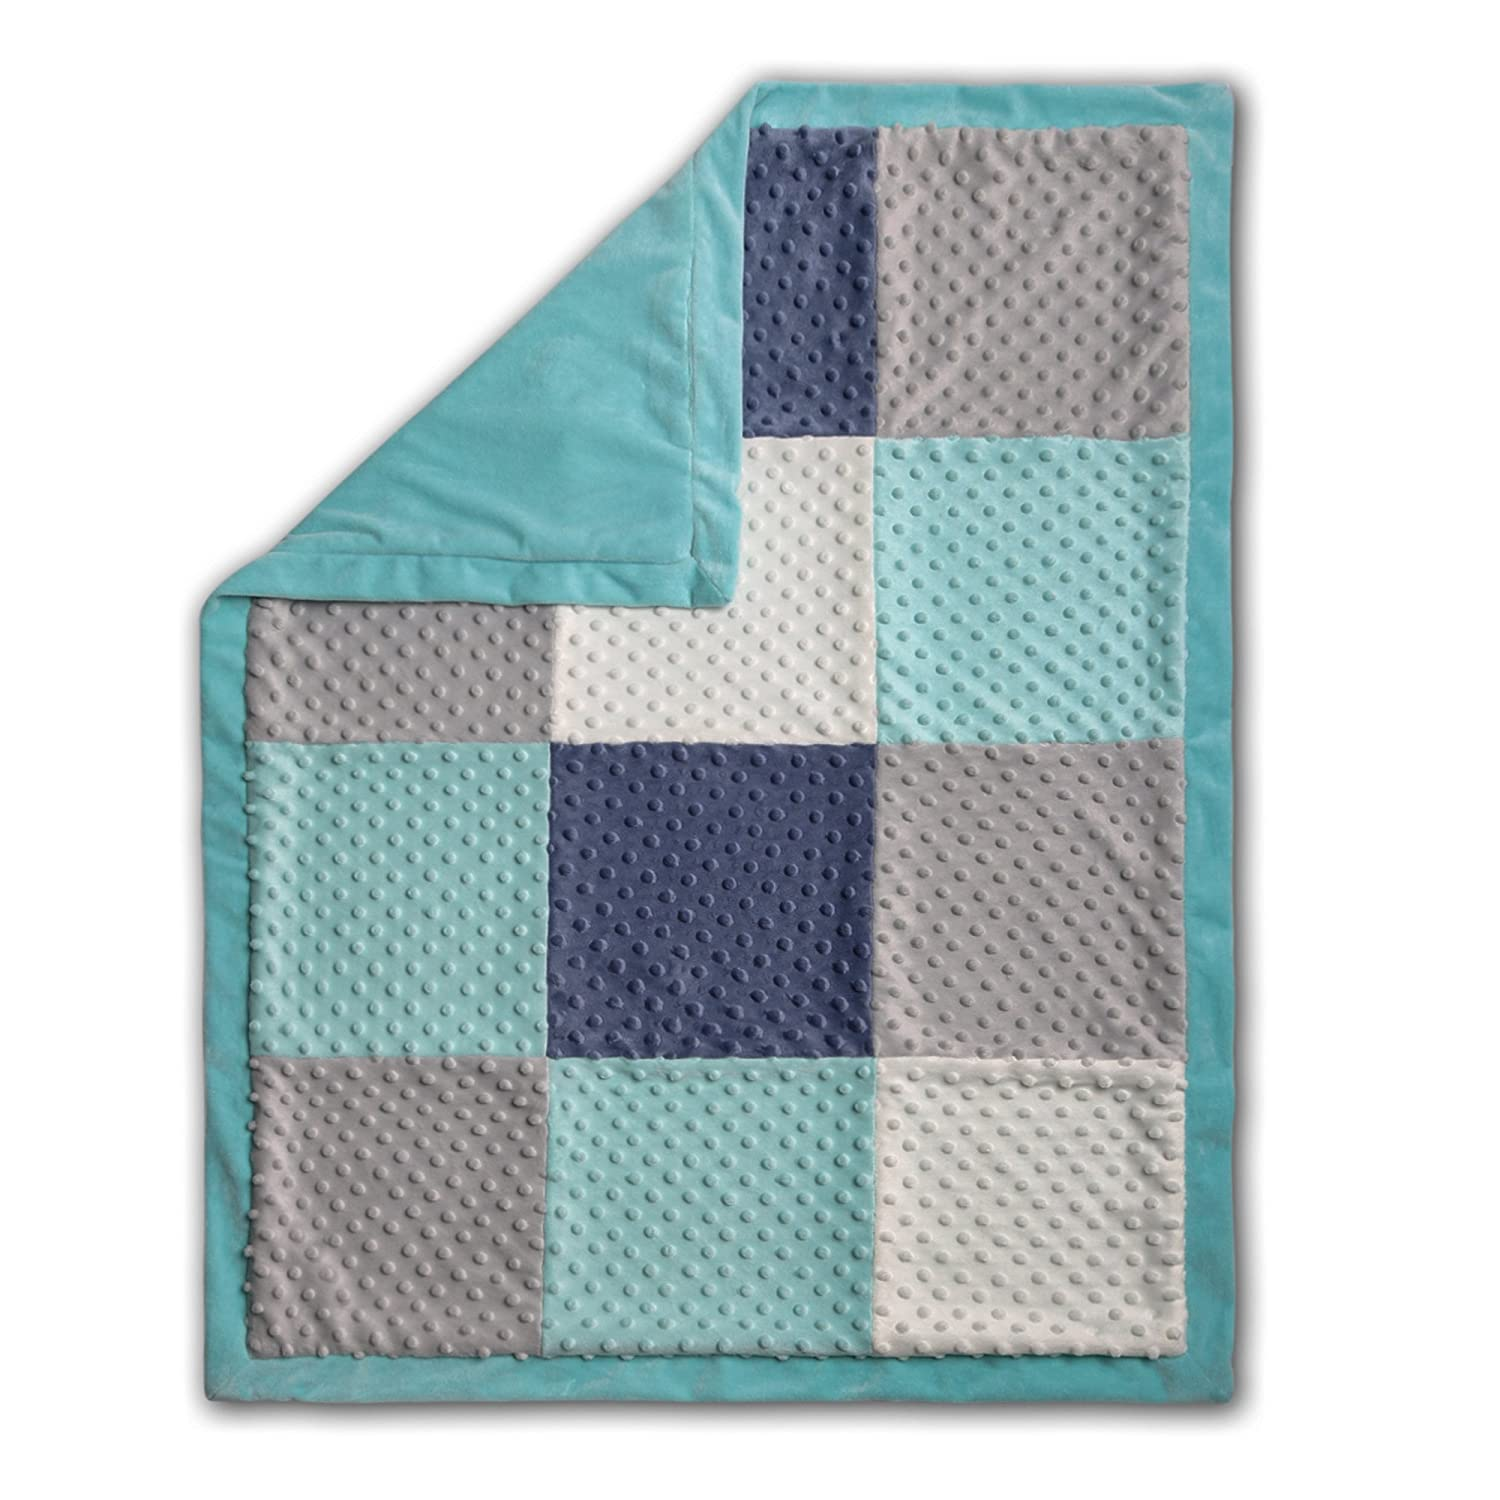 Mosaic Minky Dot Patchwork Baby Blanket by The Peanut Shell by The Peanut Shell   B01EXQ0NGW